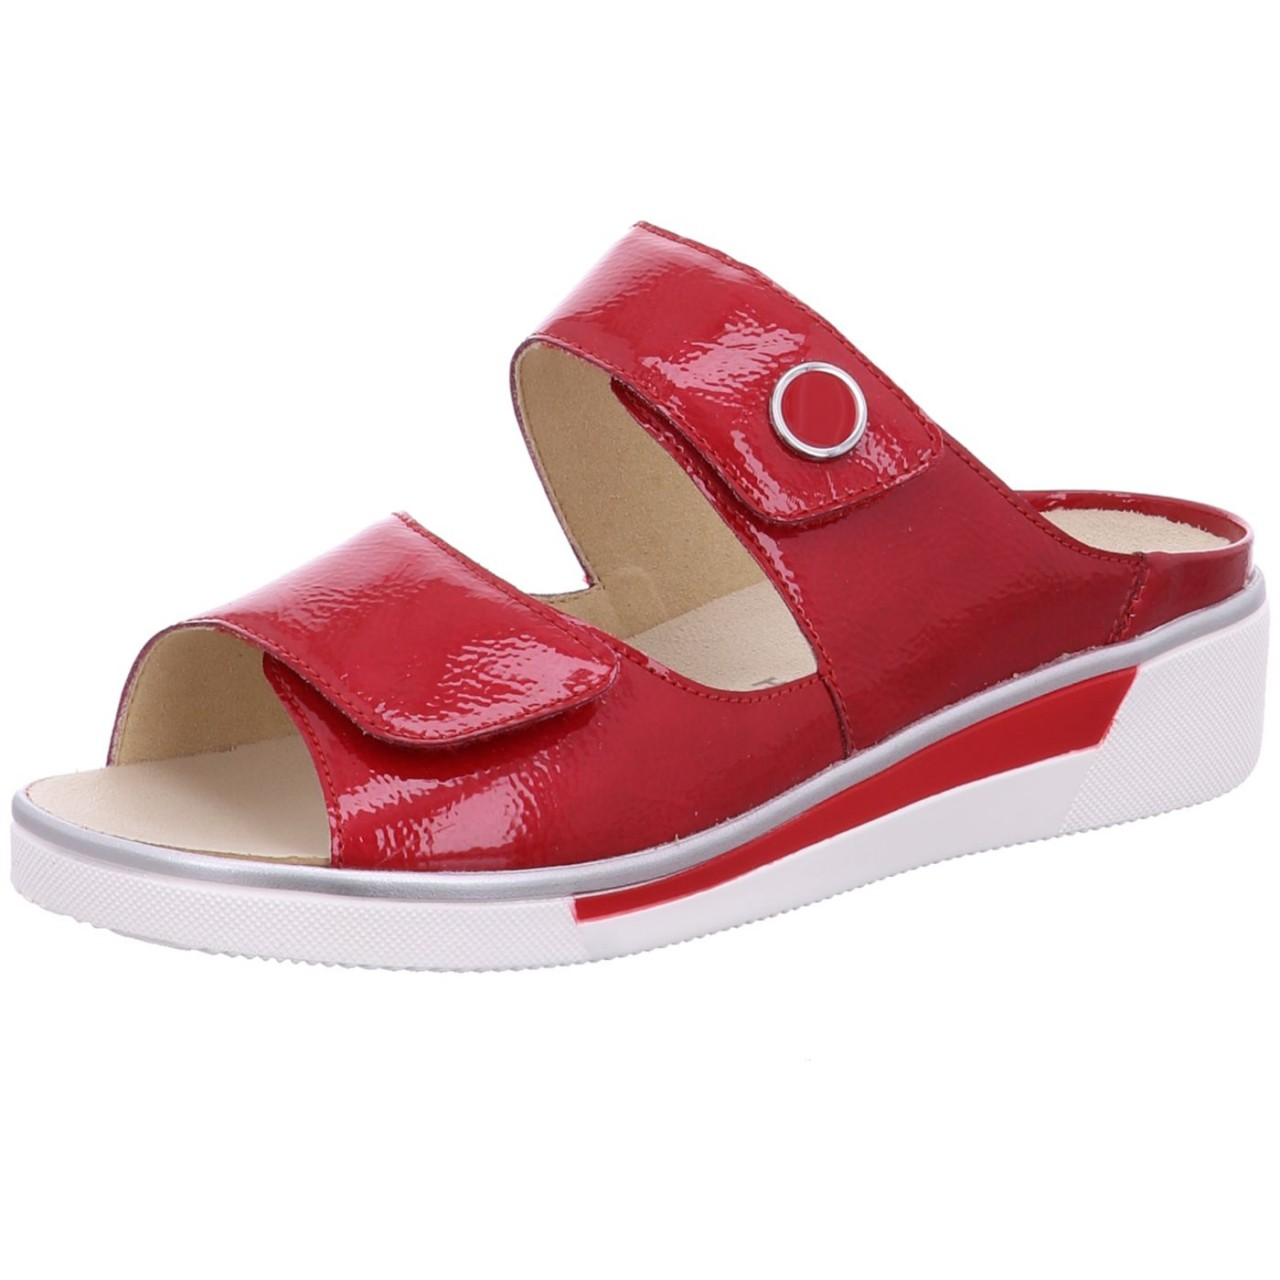 Ara Pantolette COURTYARD Rot ROSSO 78 17448-78